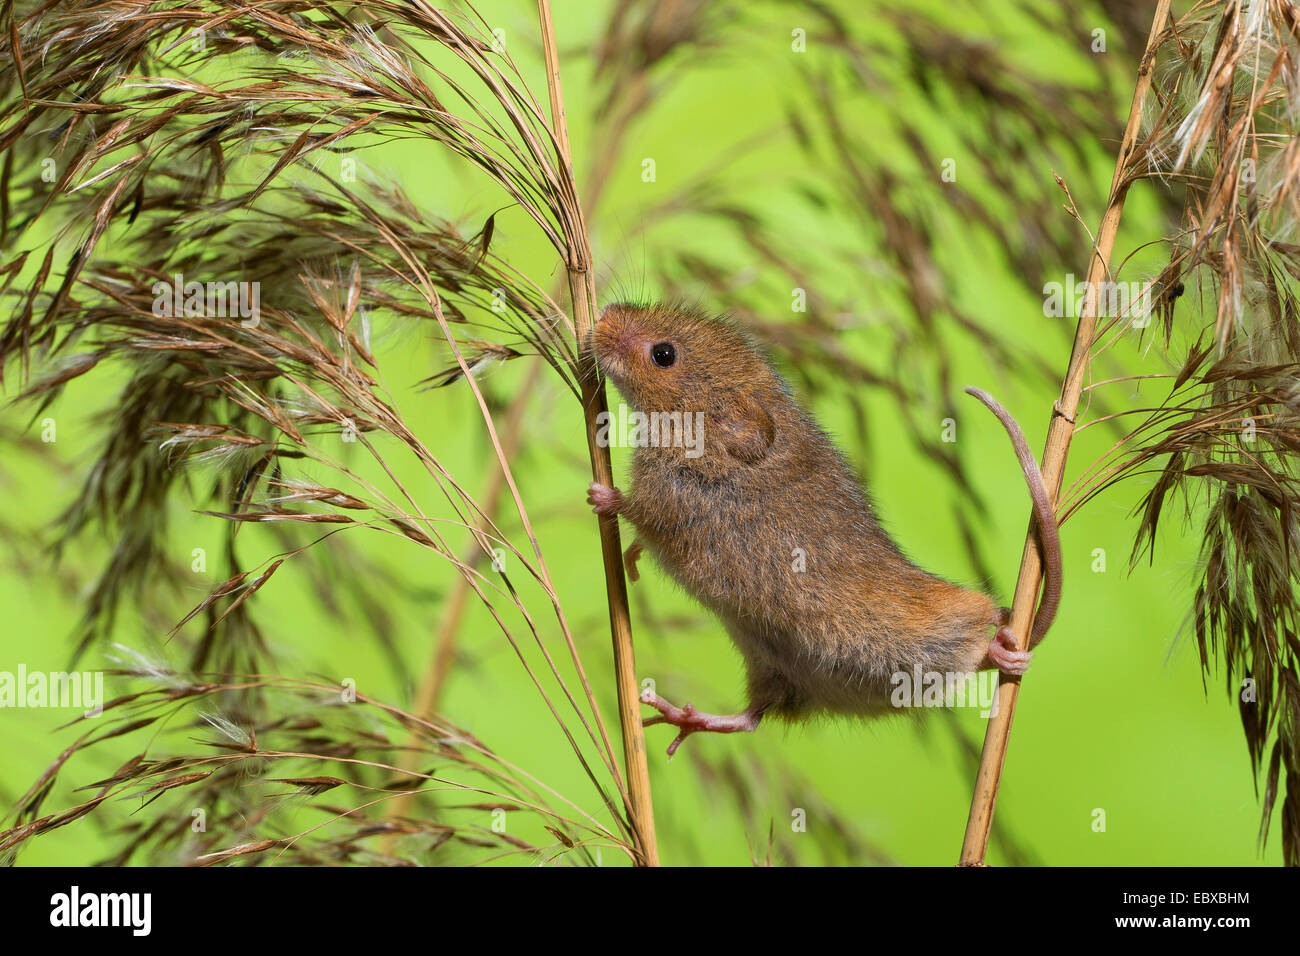 Old World harvest mouse (Micromys minutus), climbing from one to the other stem, grasping tail, Germany - Stock Image